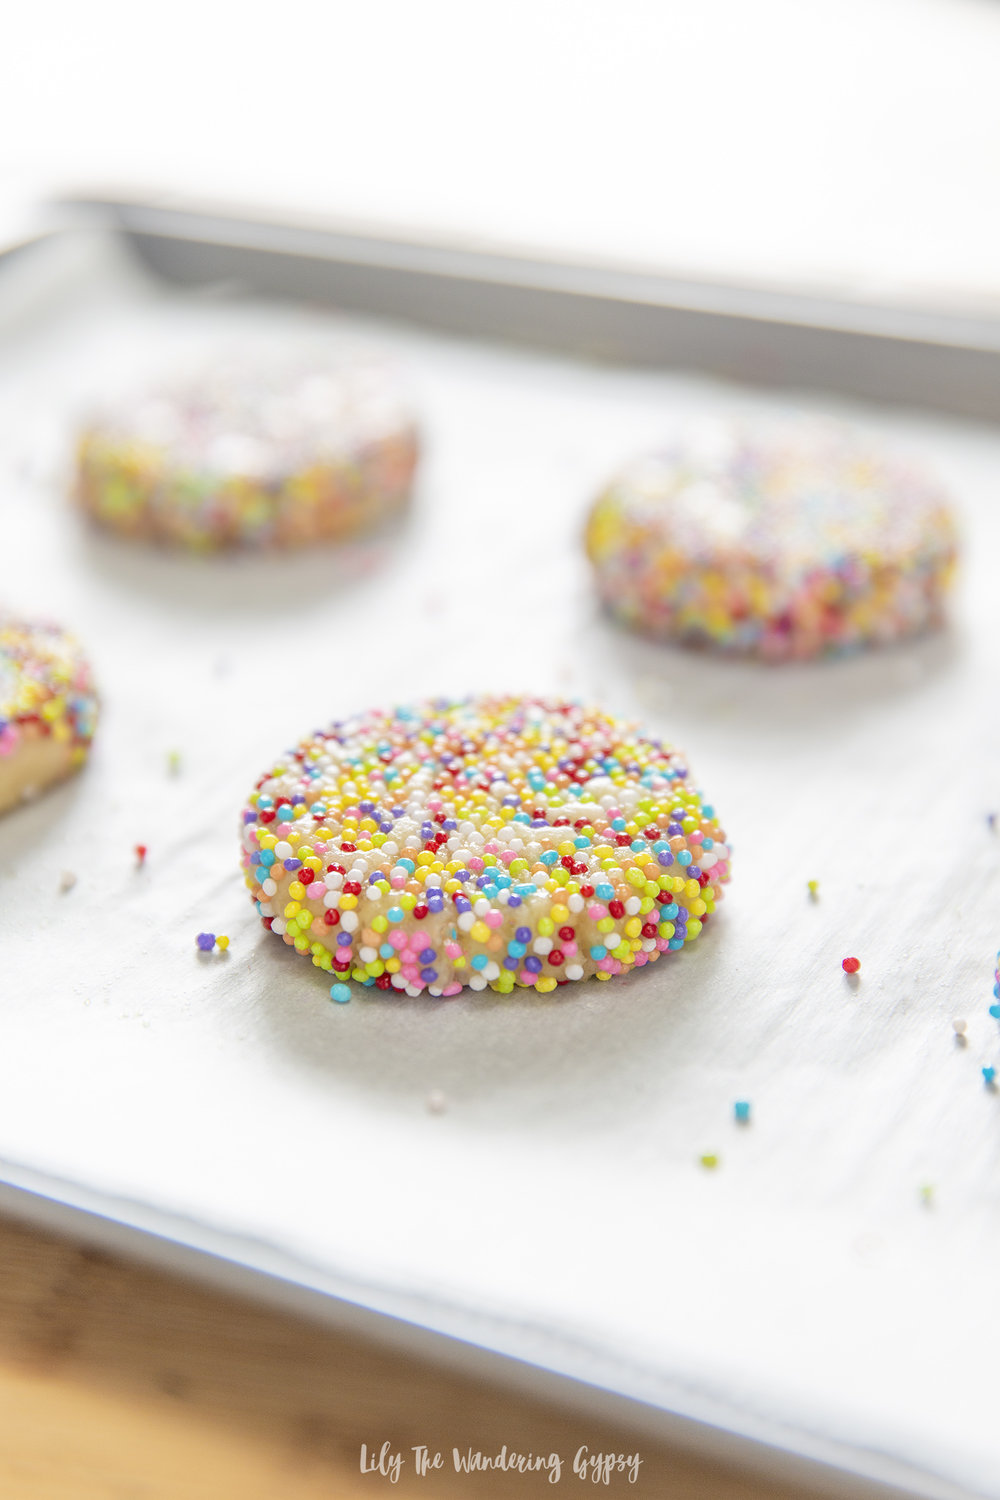 Crispy Sprinkle Cookies Recipe